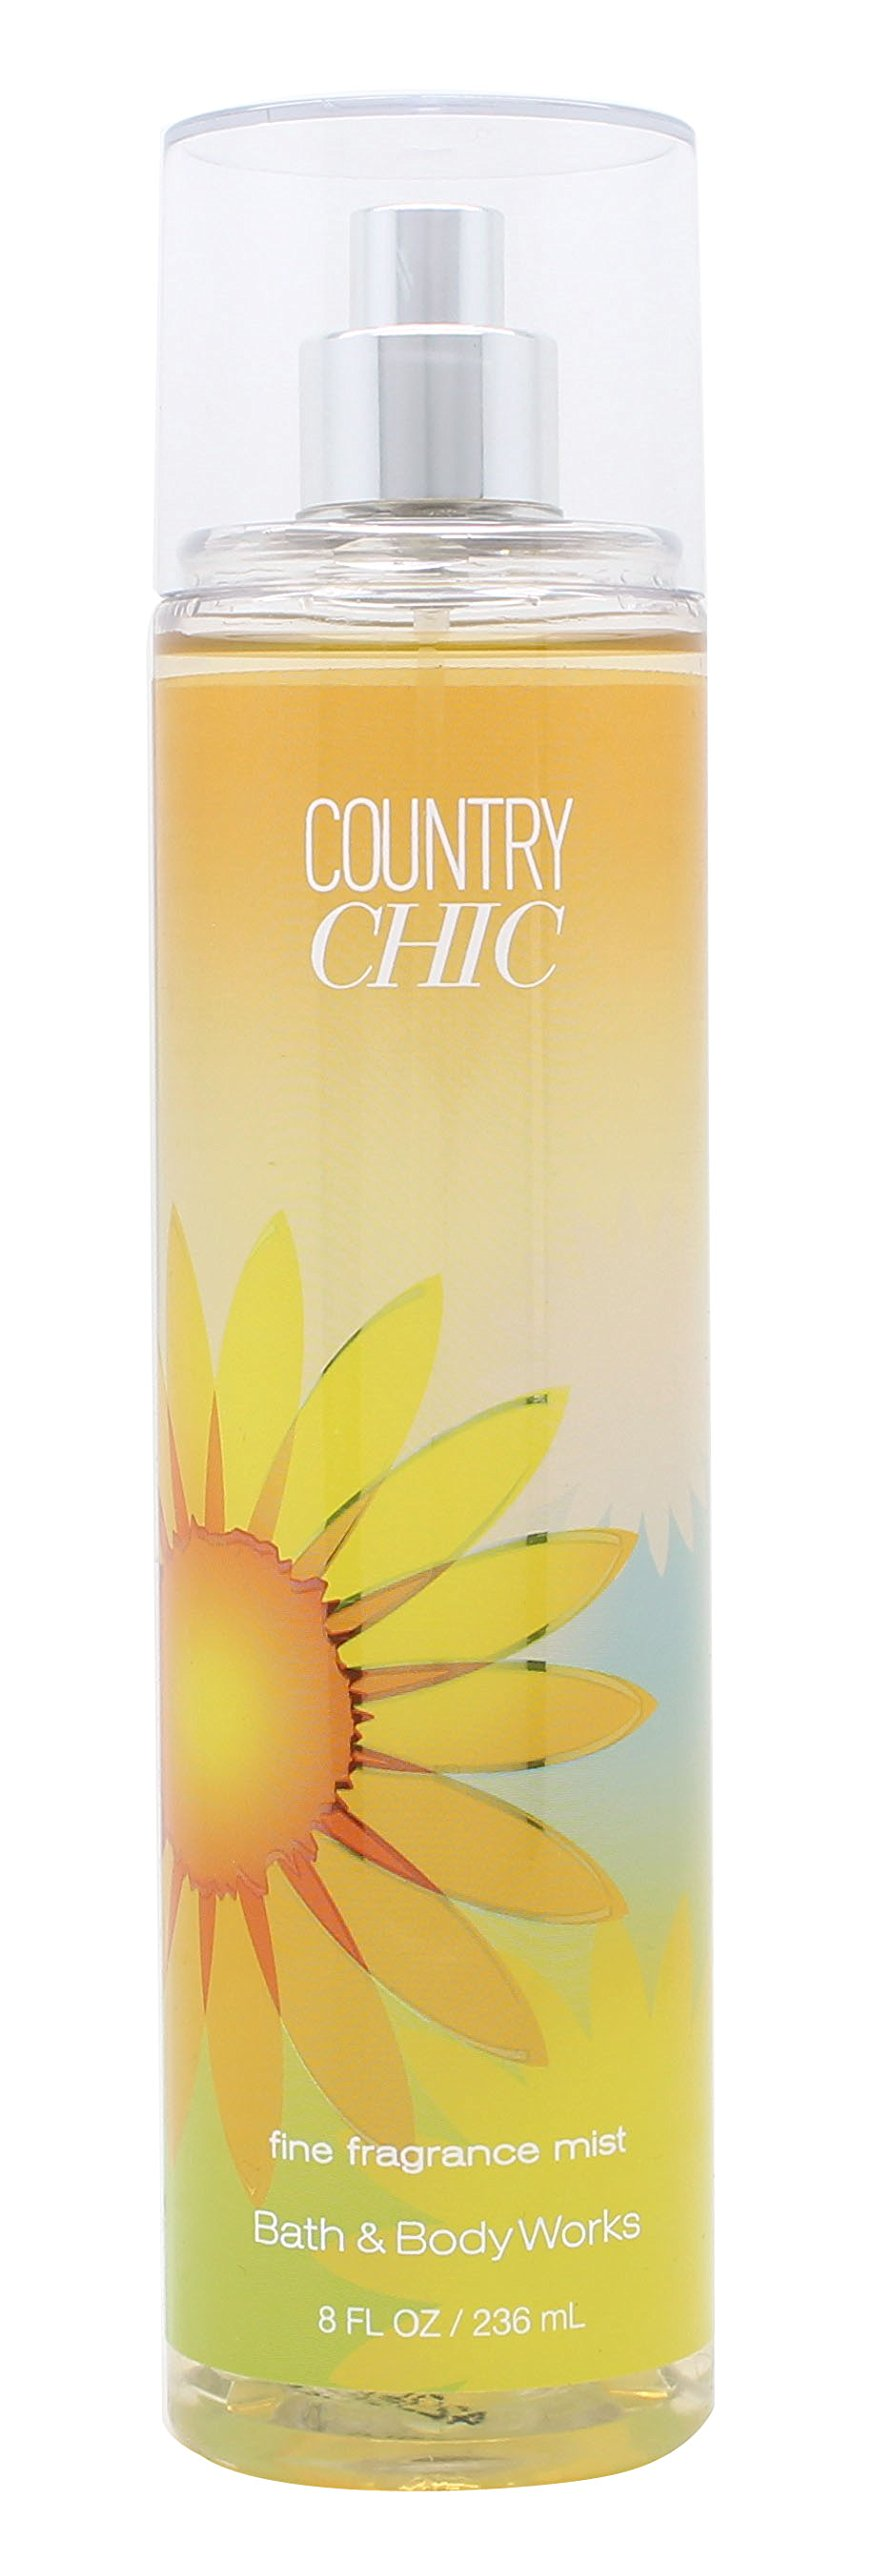 Bath and Body Works Country Chic Fine Fragrance Mist, 8.0 Fl Oz